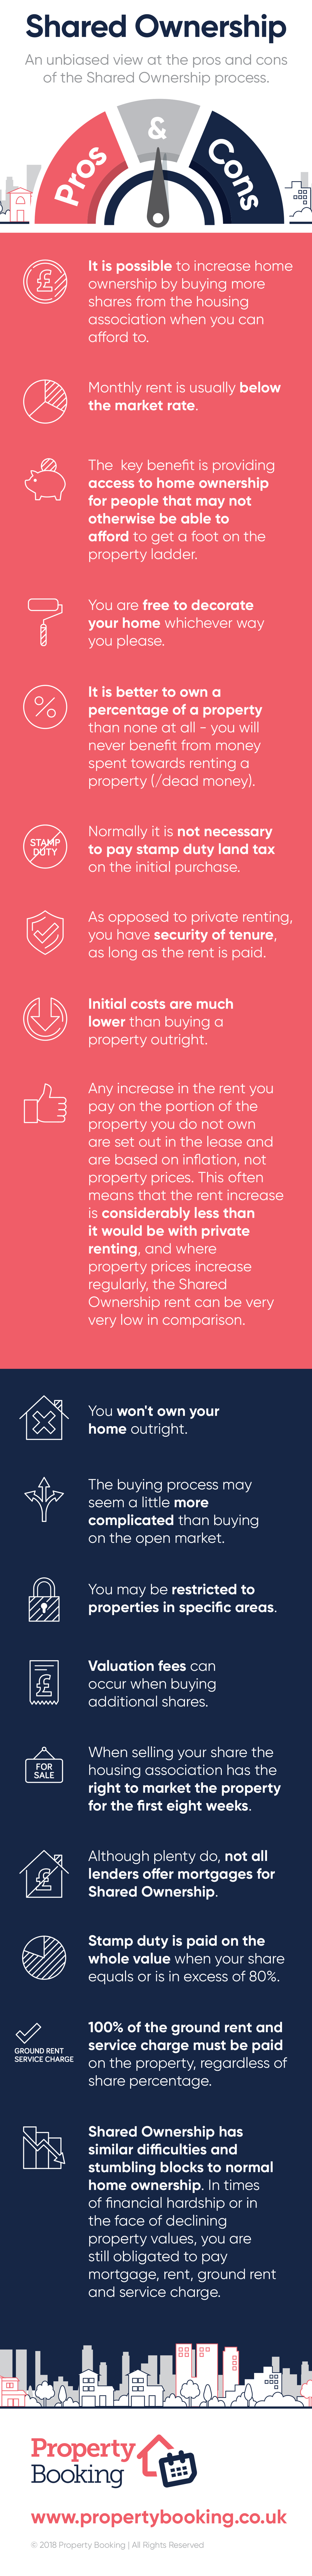 Shared Ownership - Pros and cons